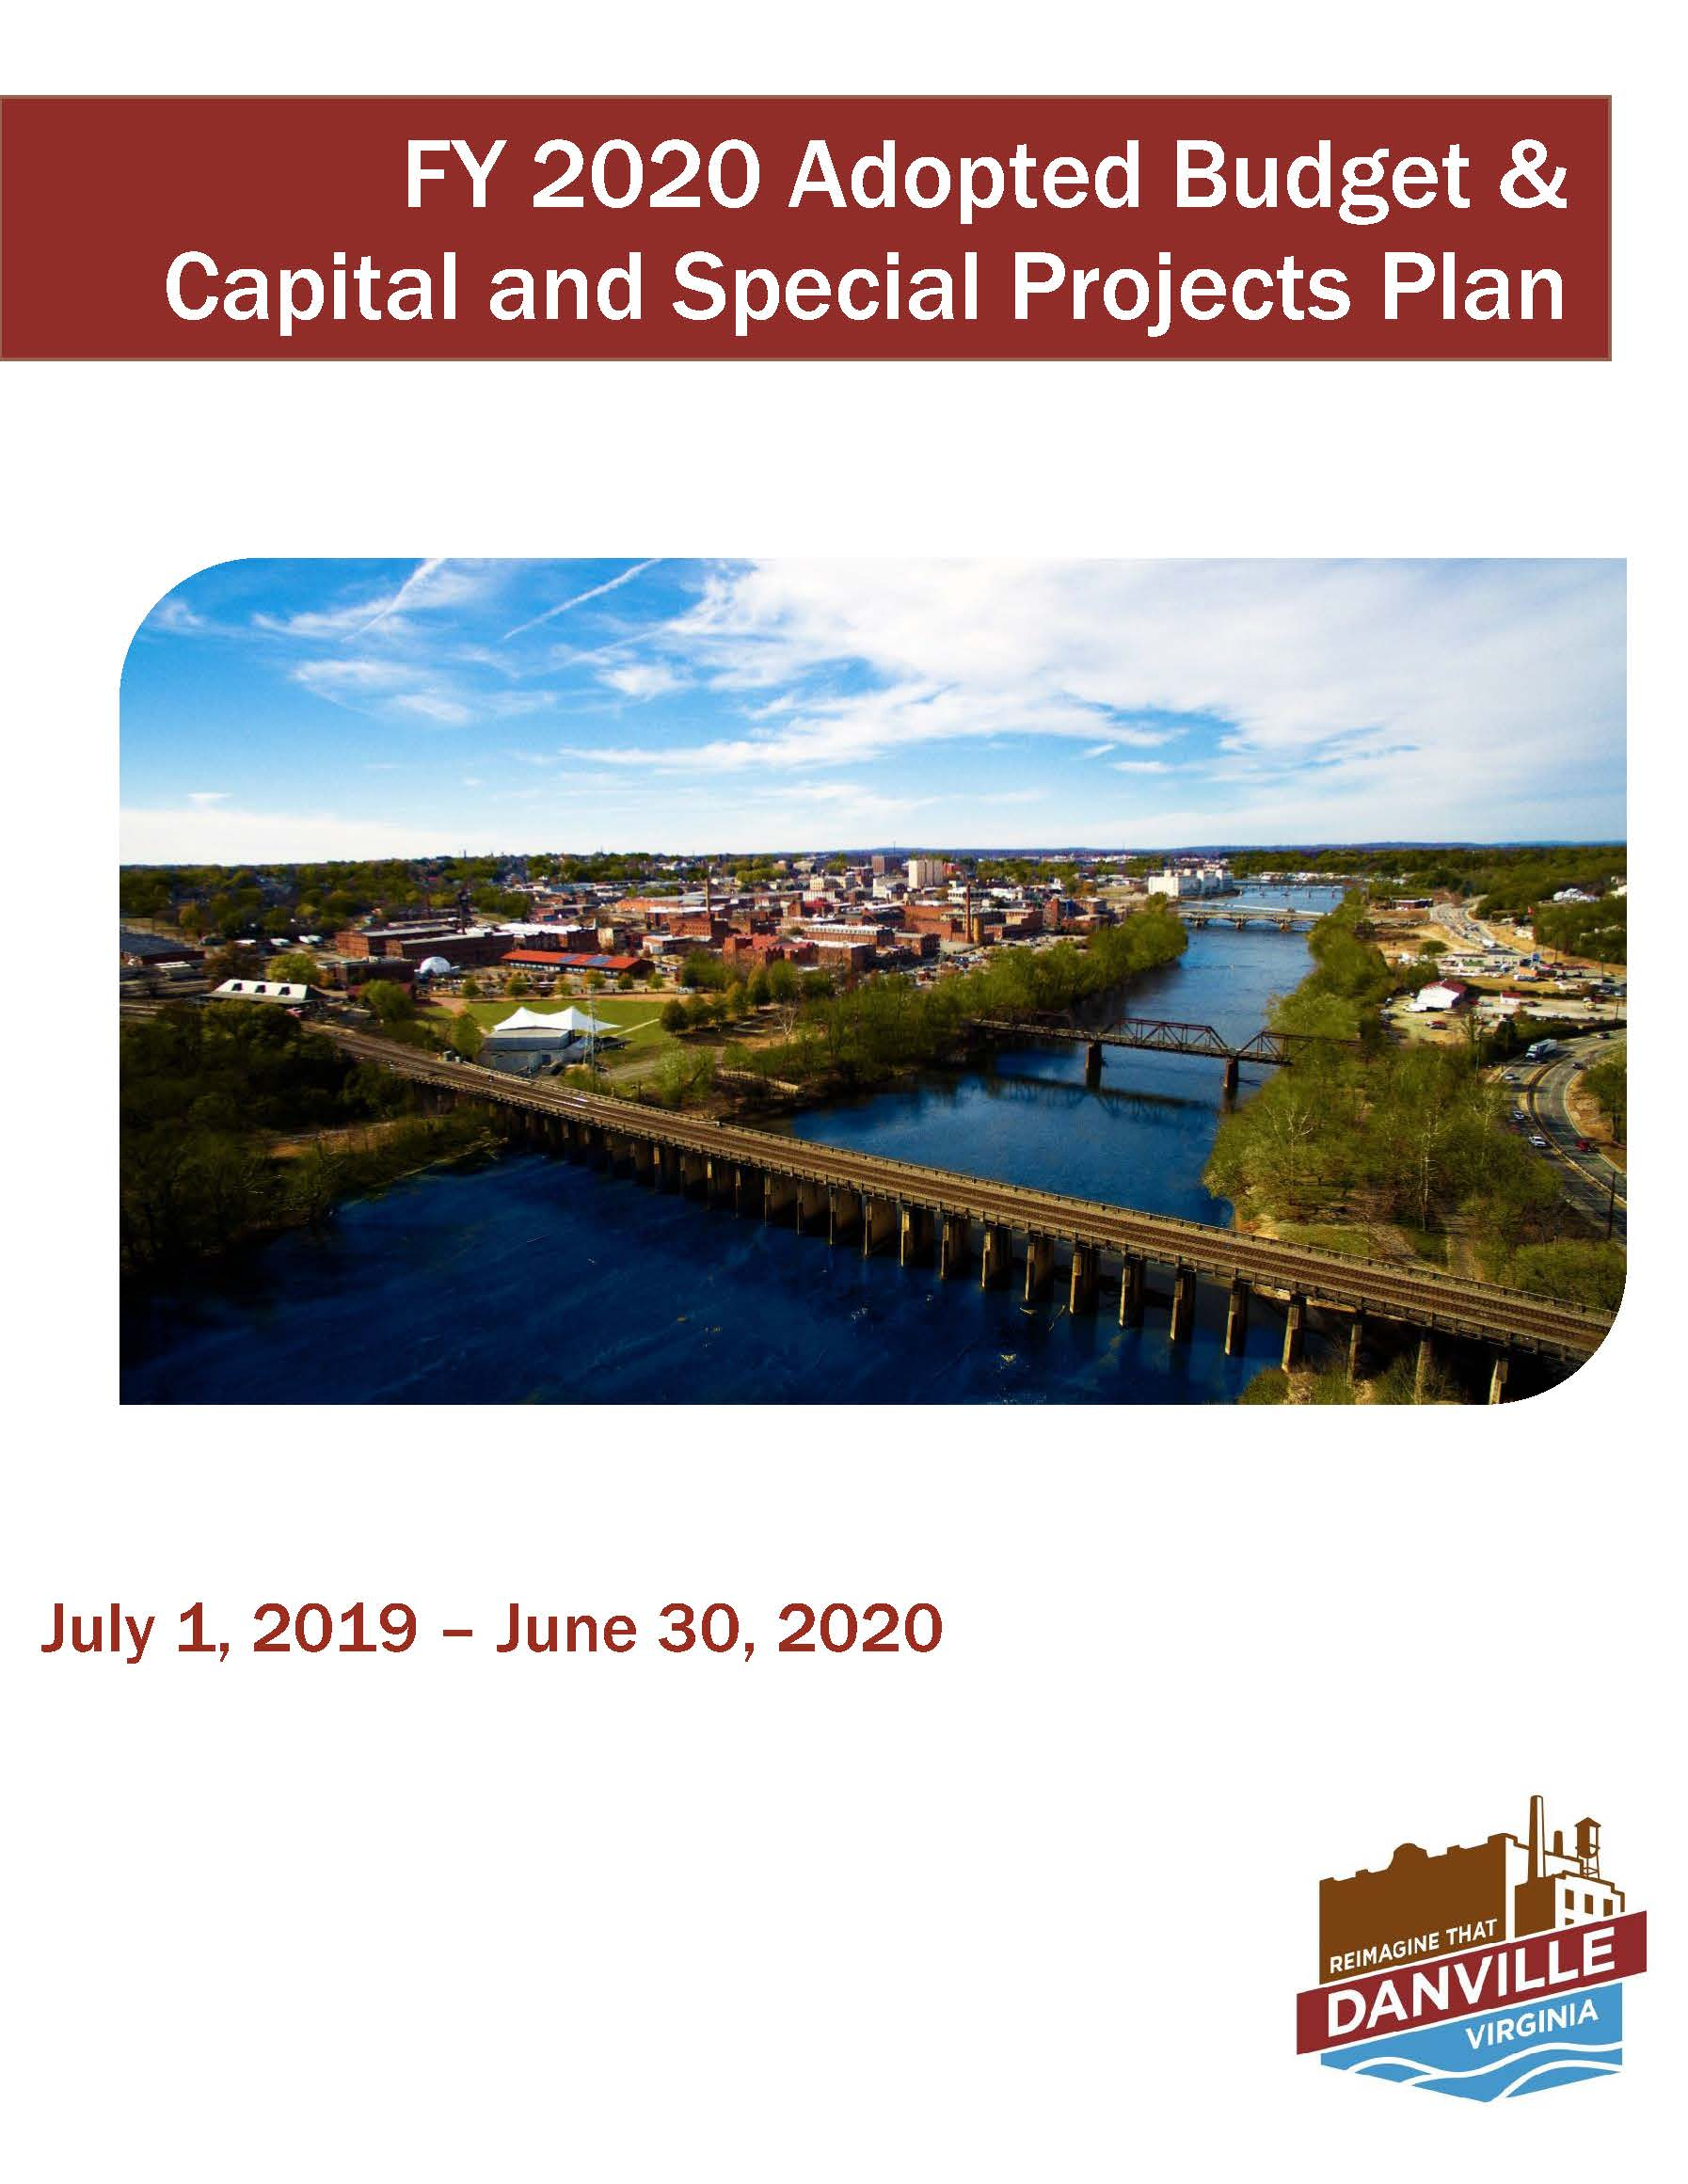 FY2020 Adopted Budget and CSP Cover featuring aerial view of Danville